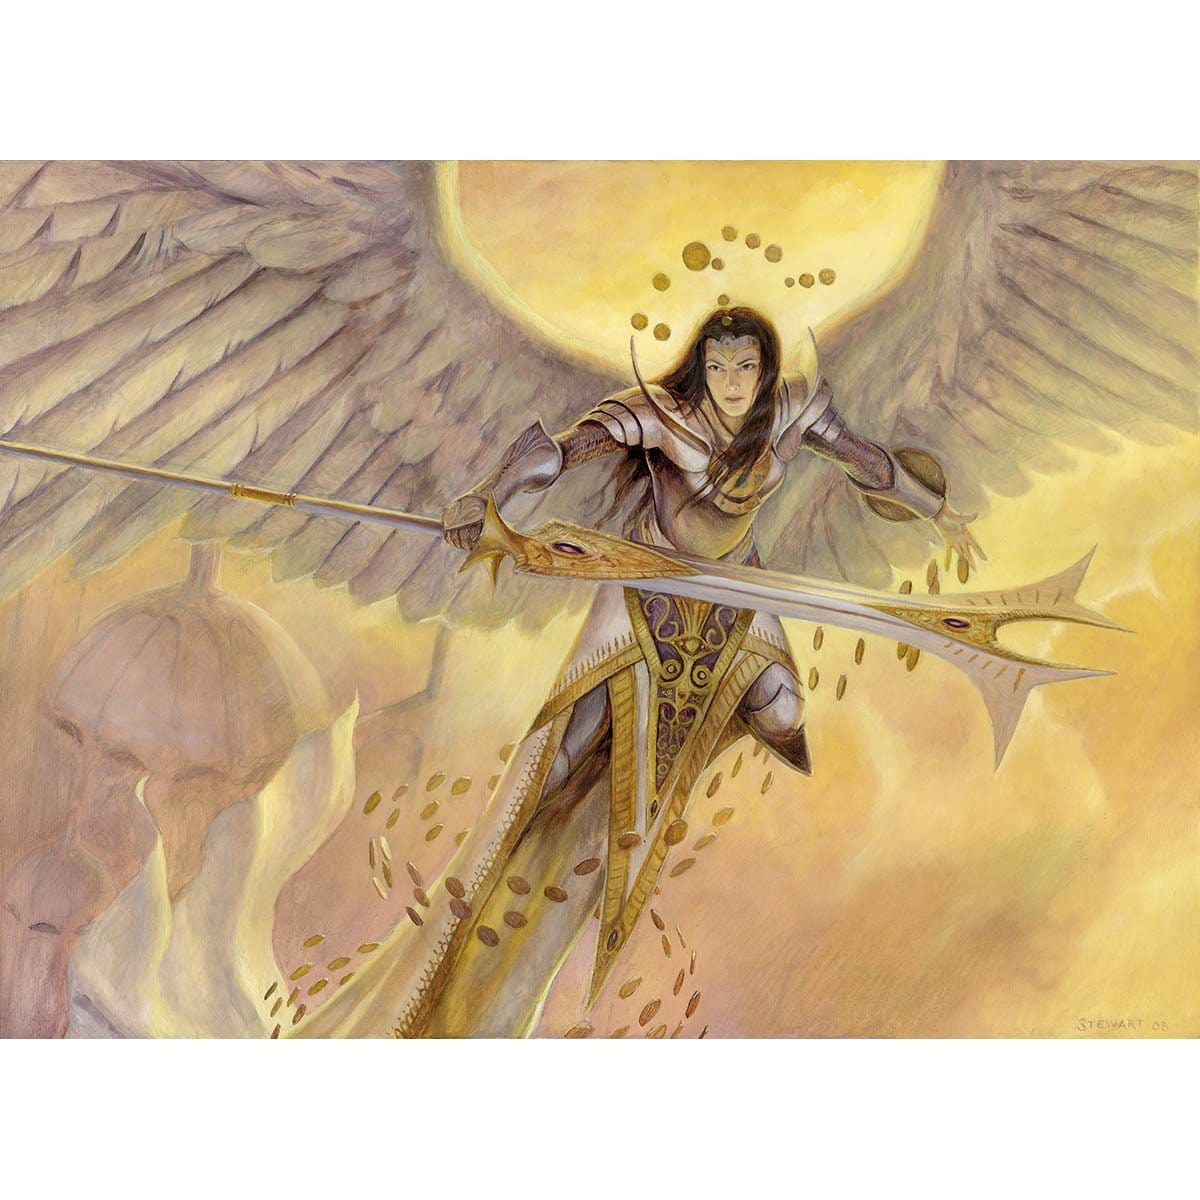 Battlegrace Angel Print - Print - Original Magic Art - Accessories for Magic the Gathering and other card games